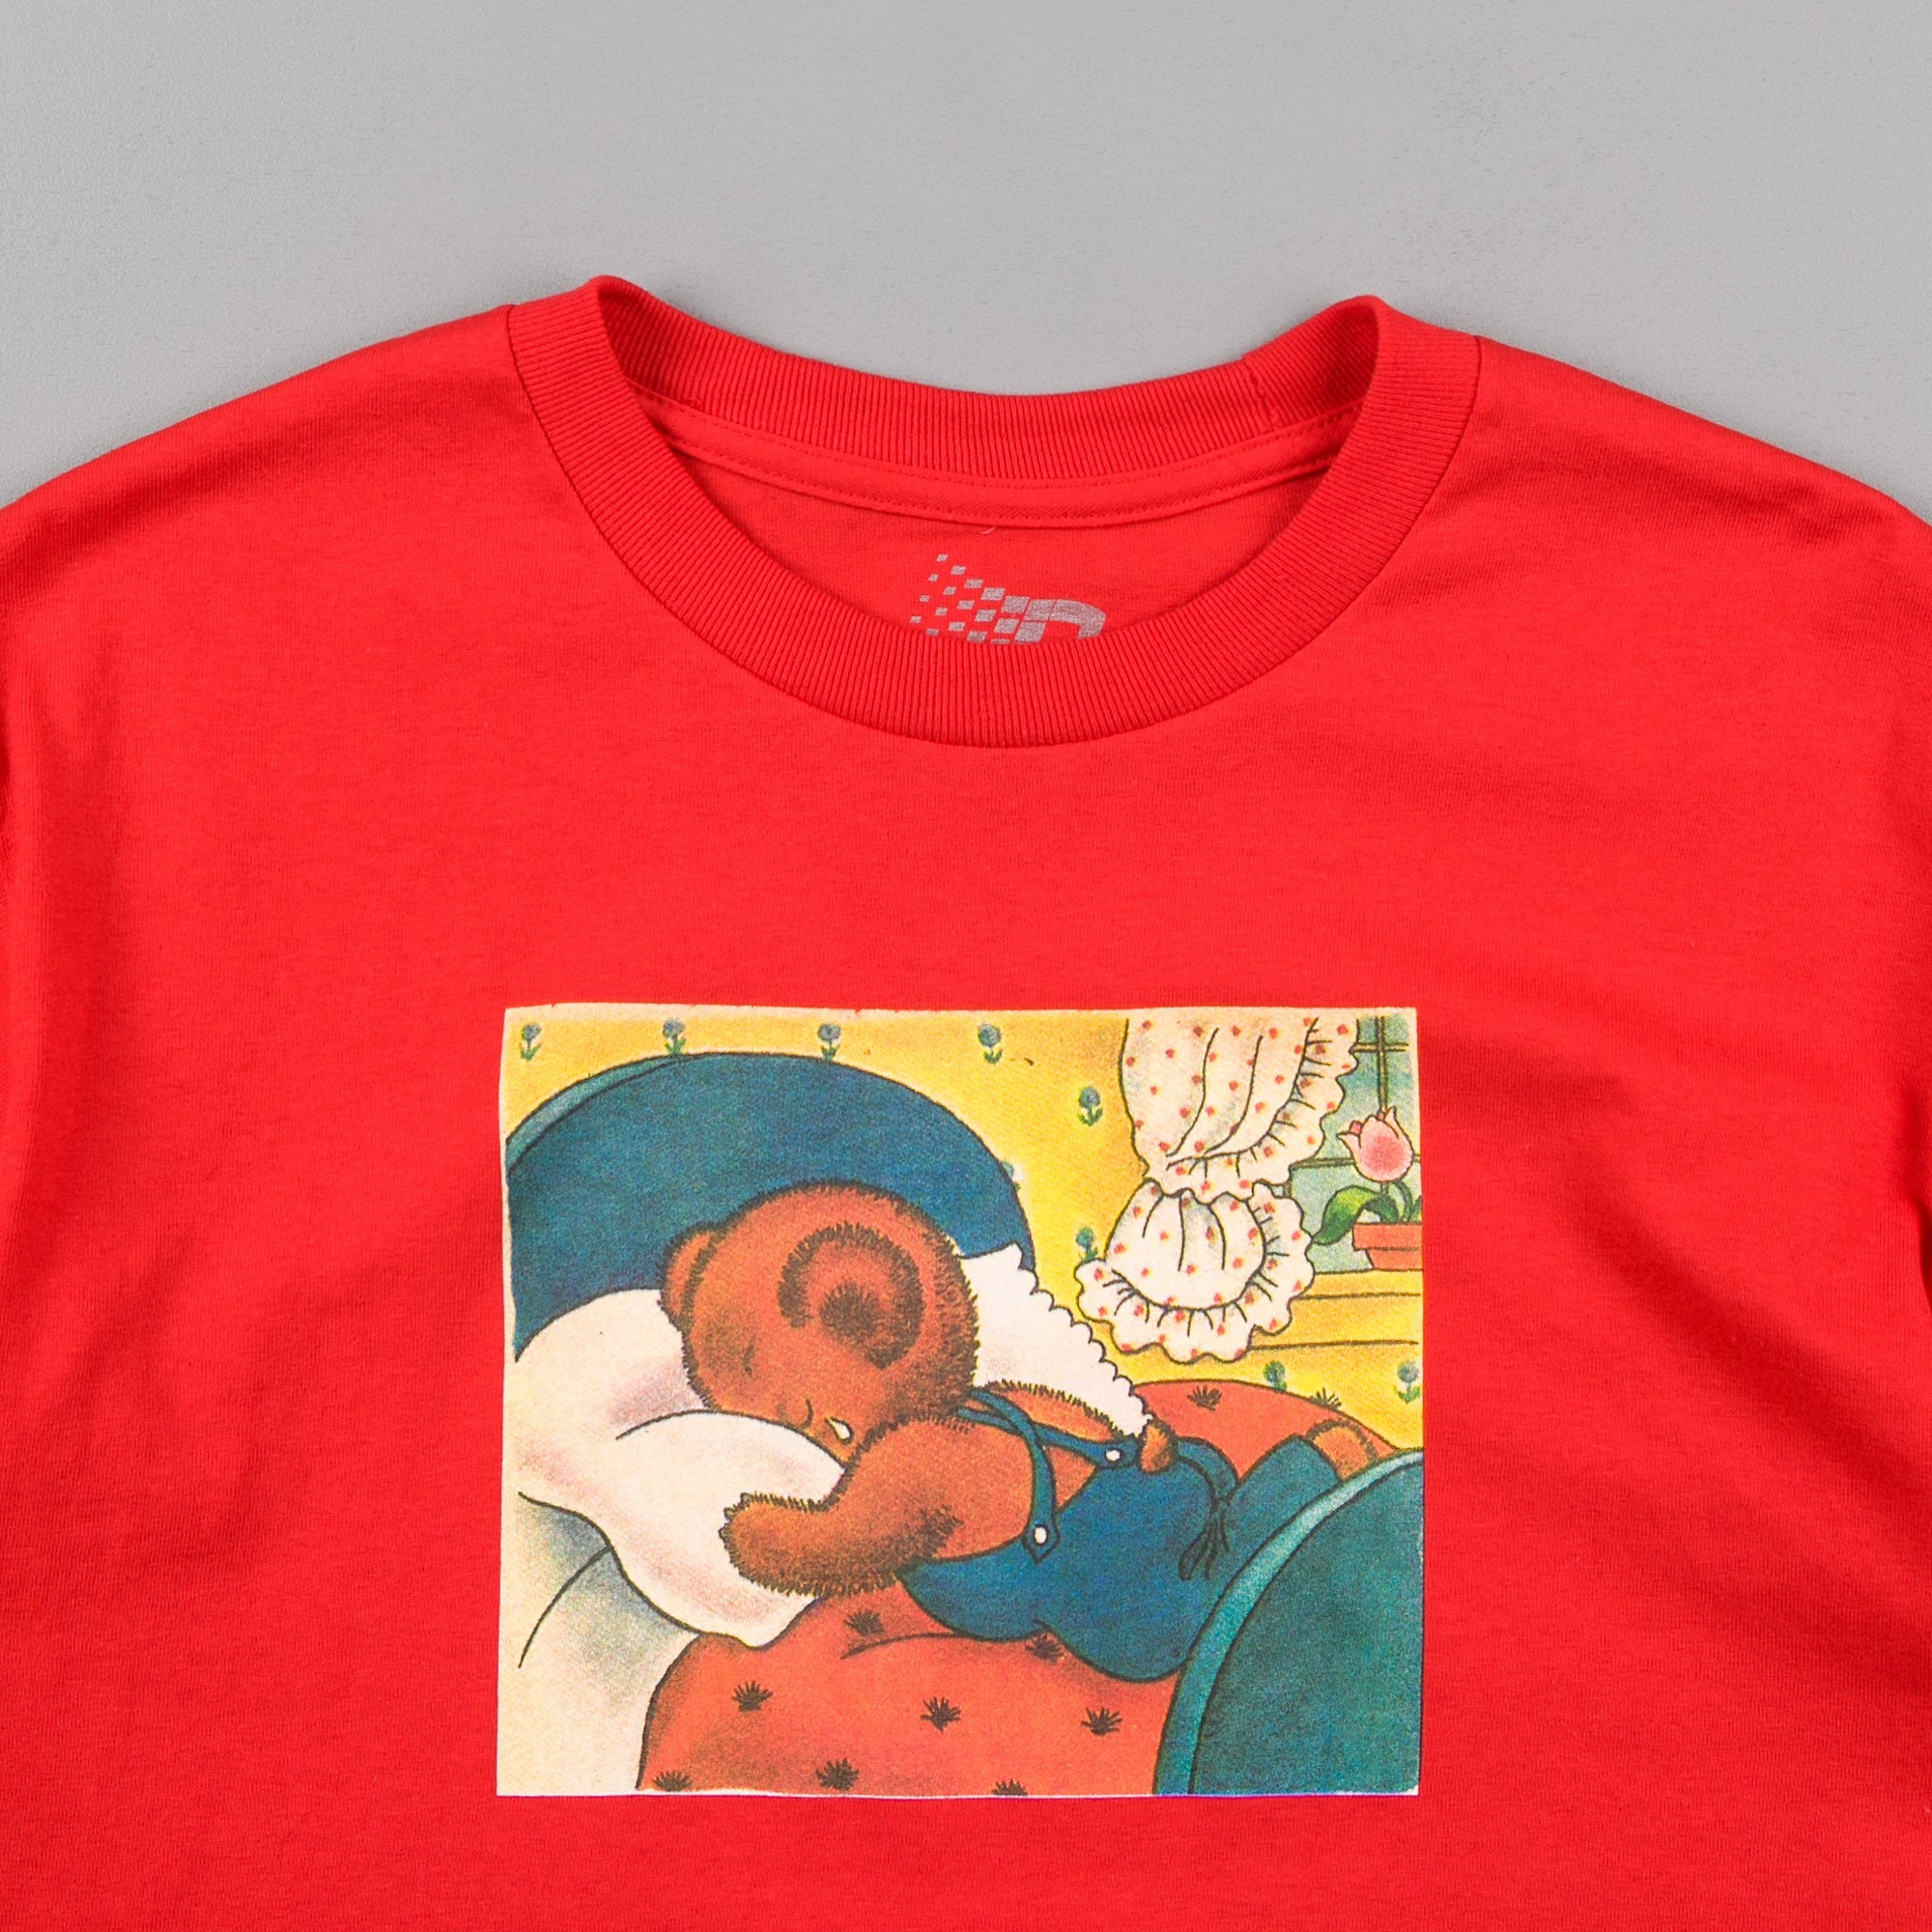 Bronze 56k Sad Bear T-Shirt - Red